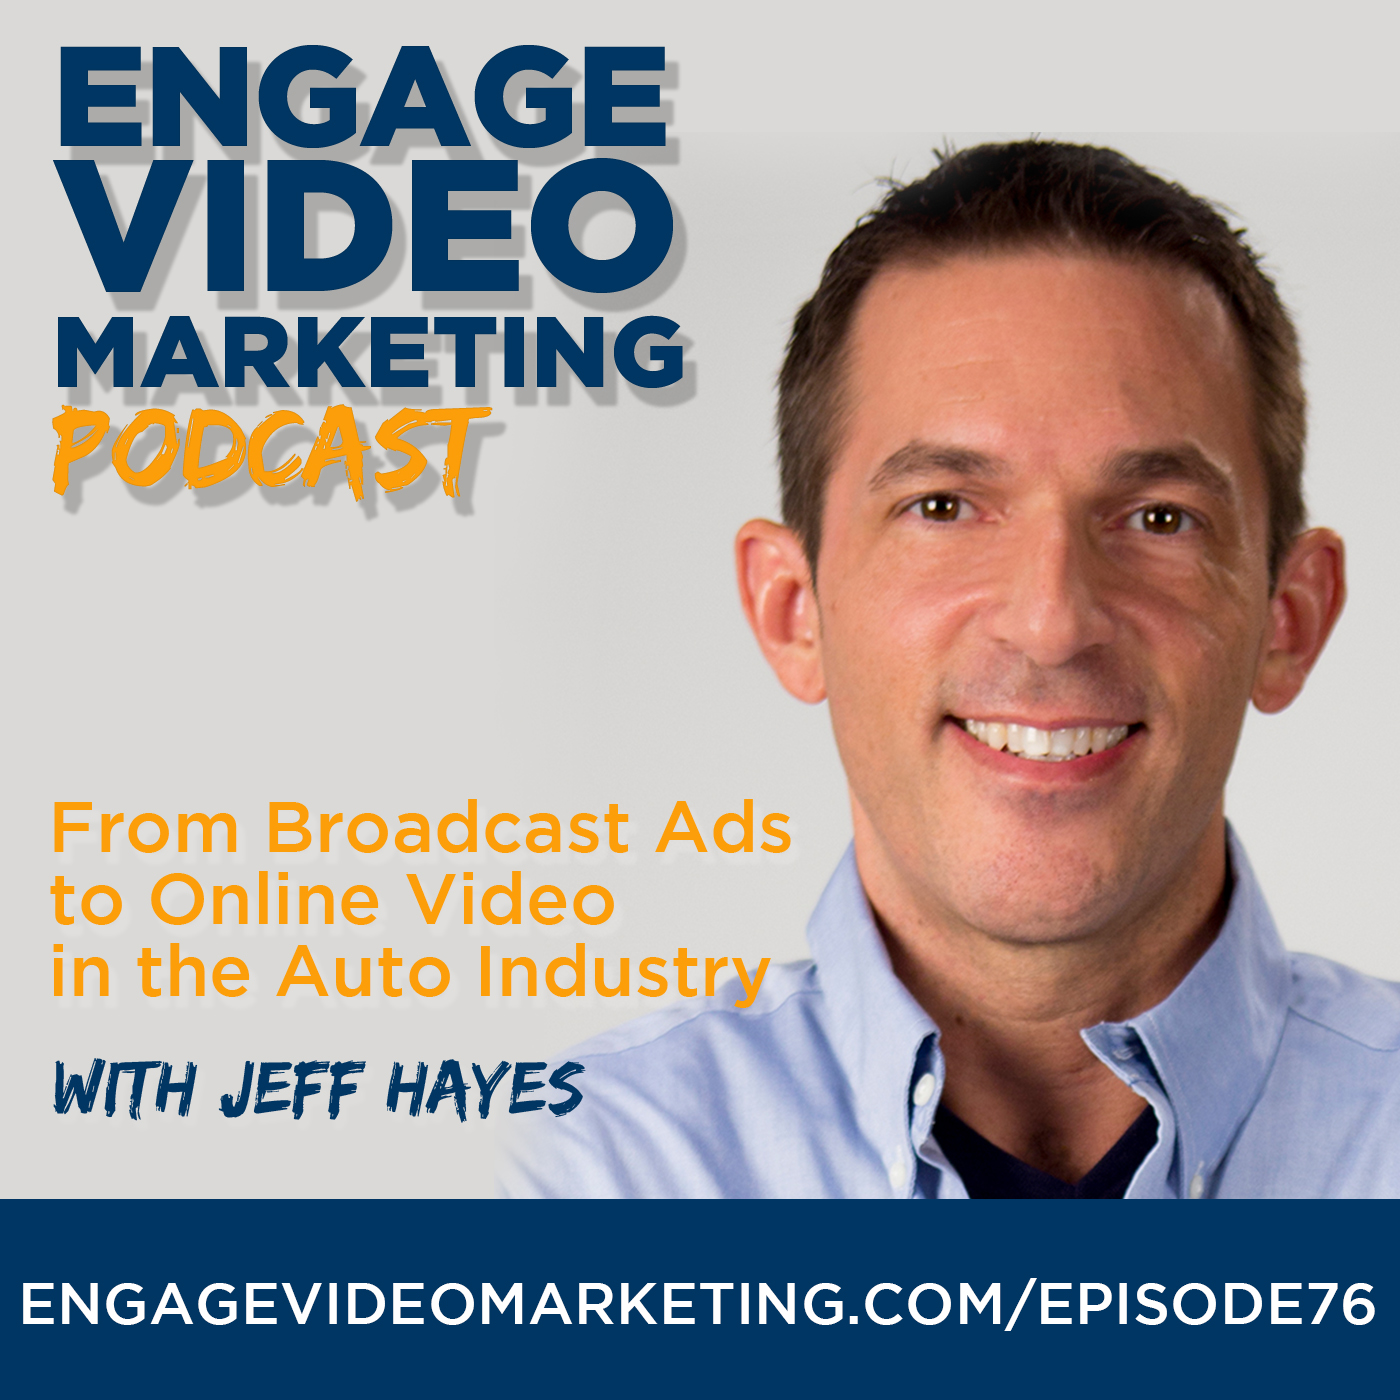 From Broadcast Ads to Online Video in the Auto Industry with Jeff Hayes